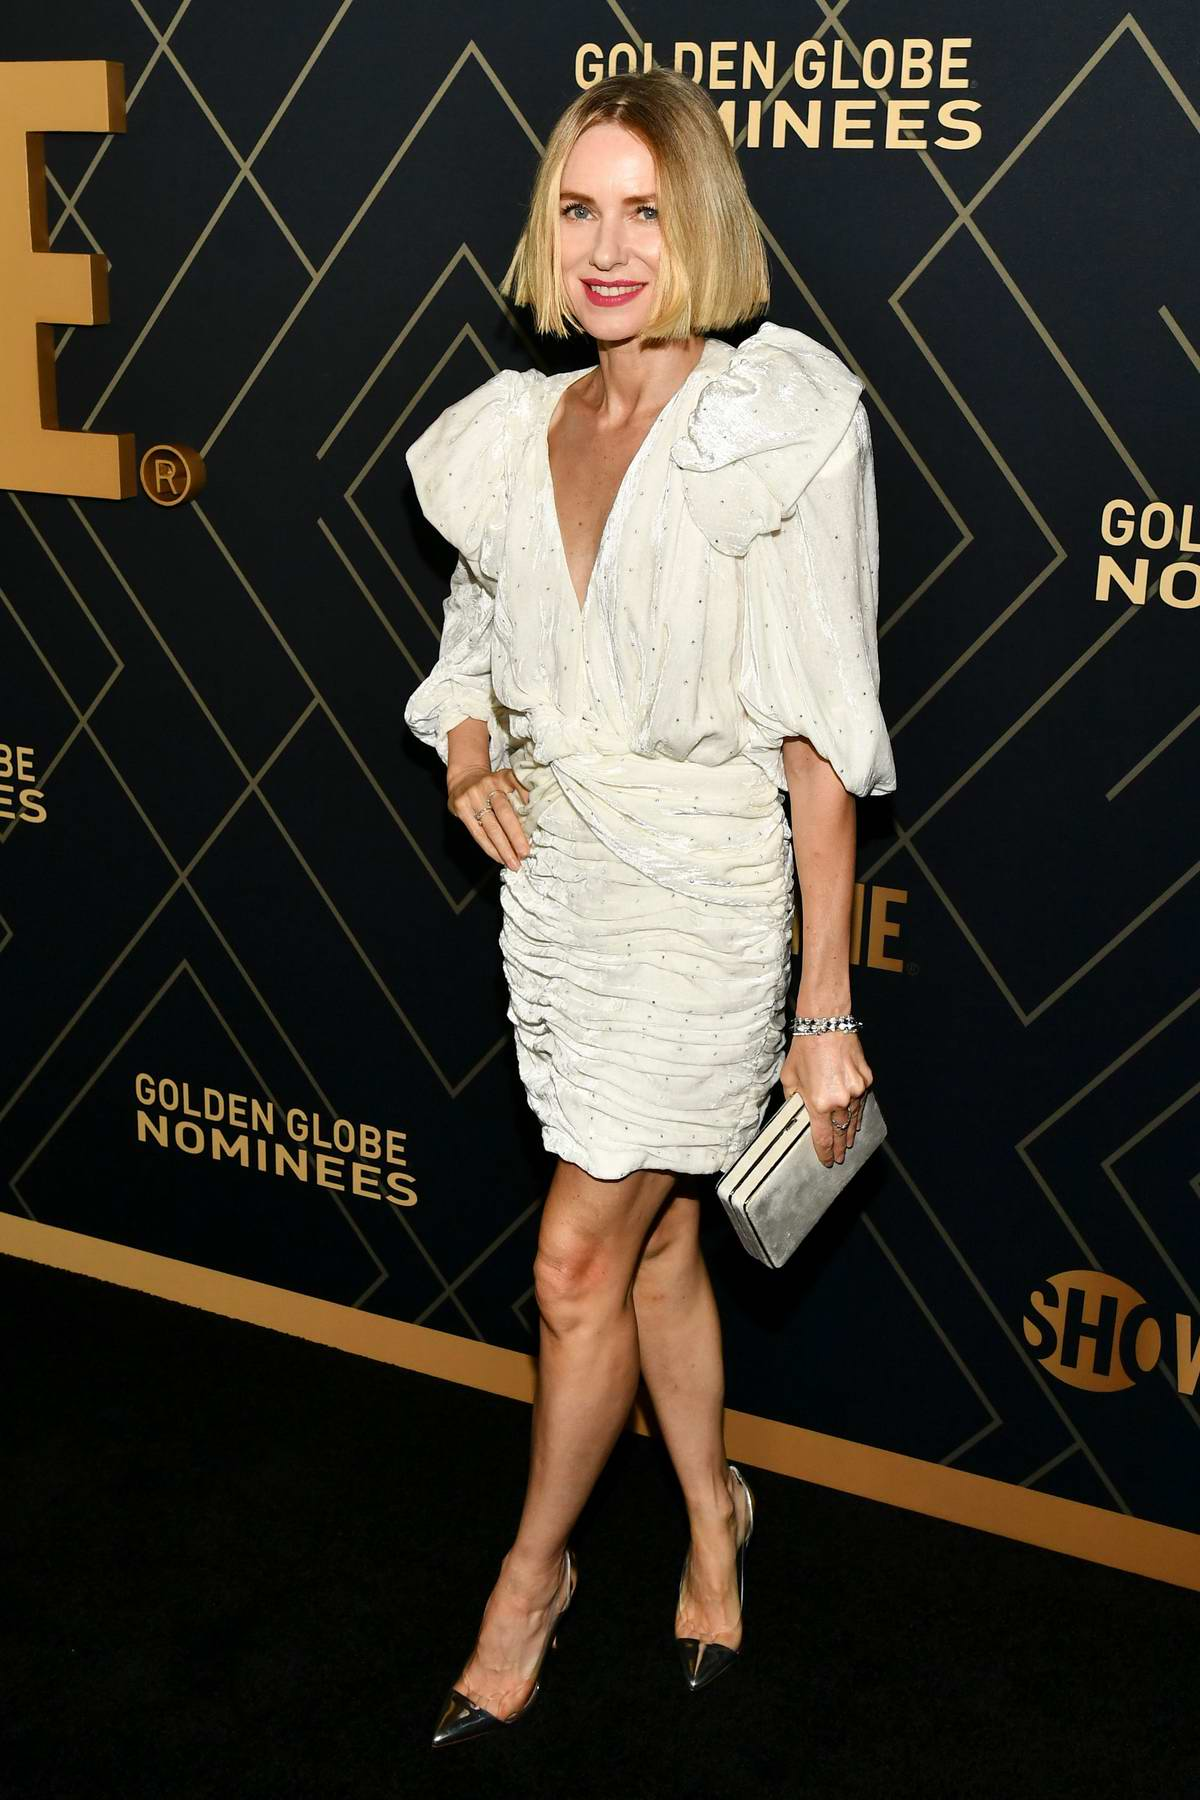 Naomi Watts attends the Showtime Golden Globe Nominees Celebration in Los Angeles